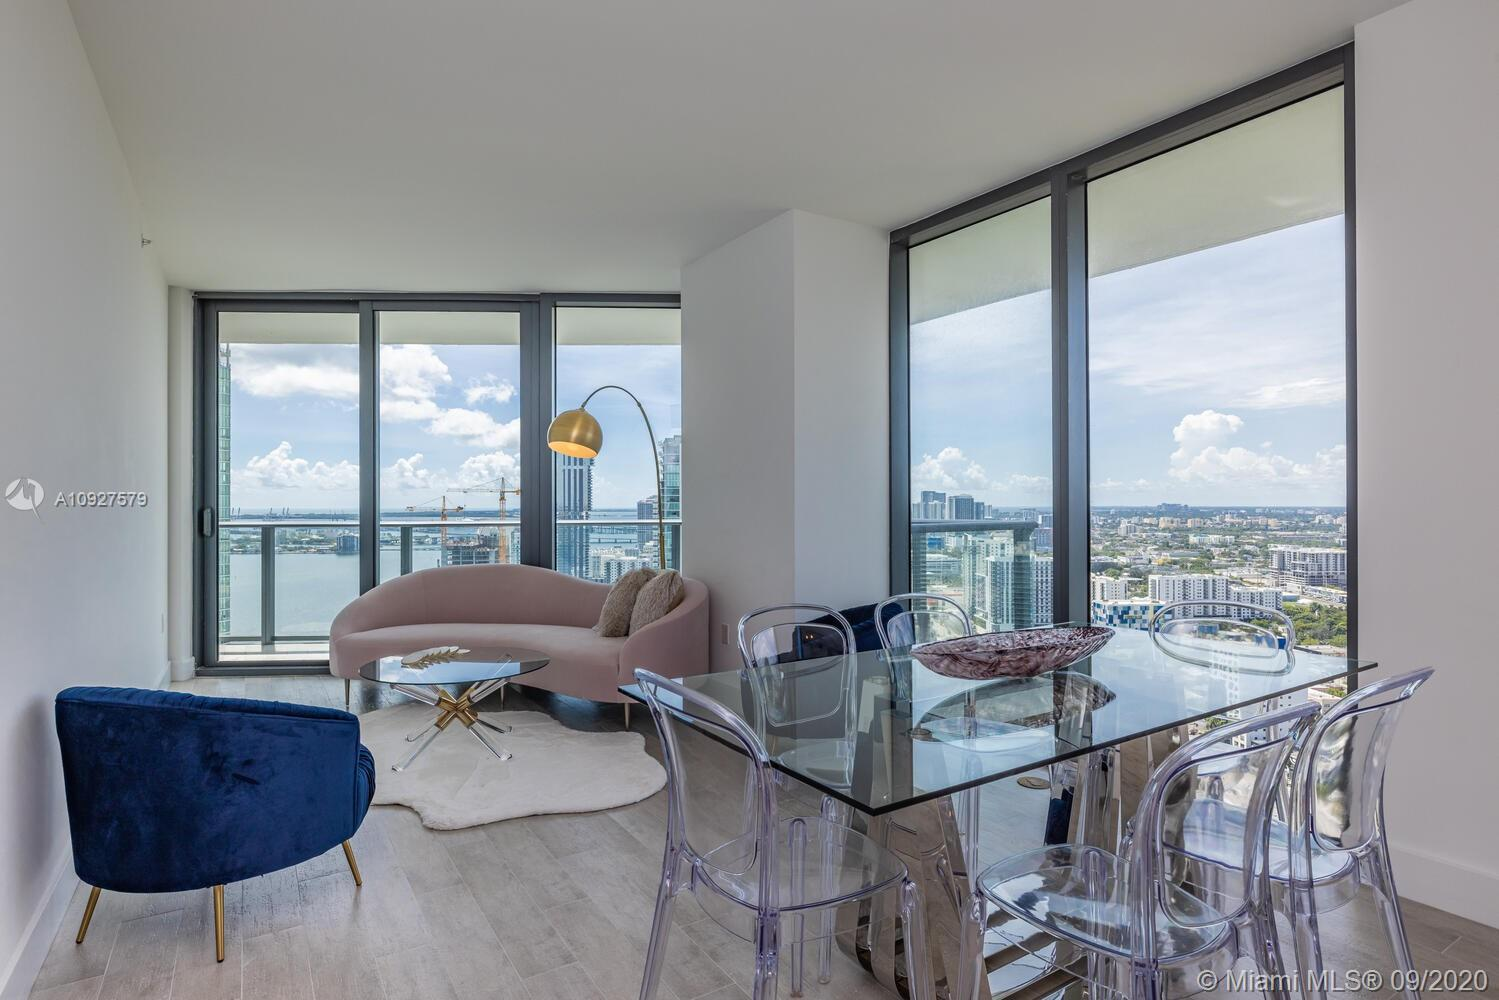 Stunning views from this beautiful high floor corner unit, 2 Bedroom/ 2 bathroom with Den, 2 large b